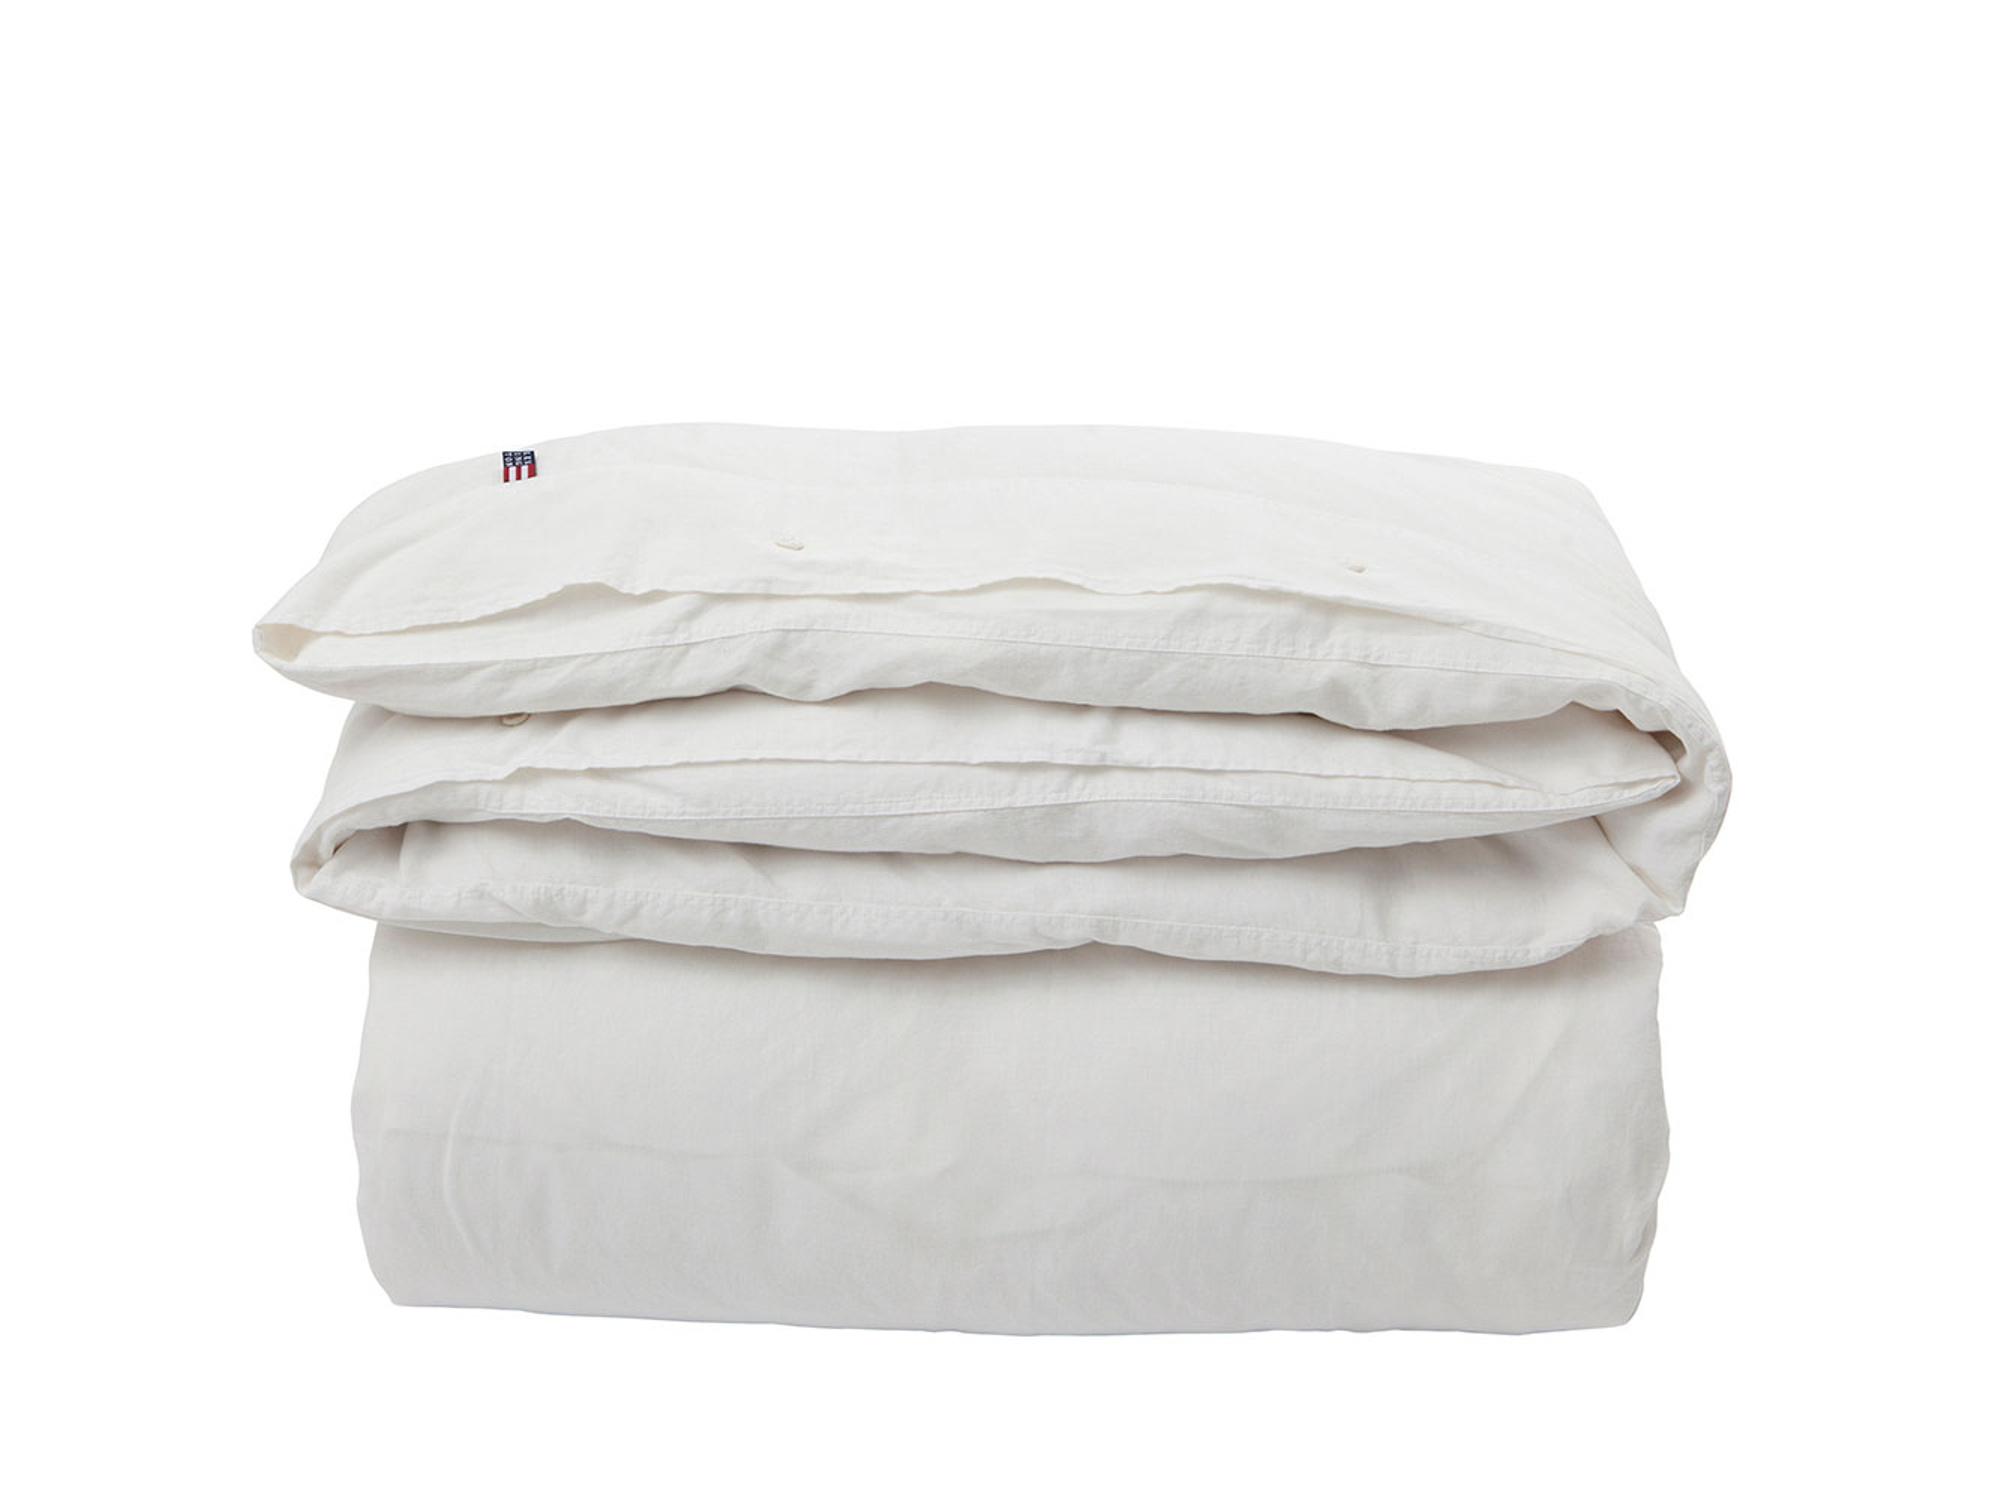 Washed Cotton Linen White Duvet